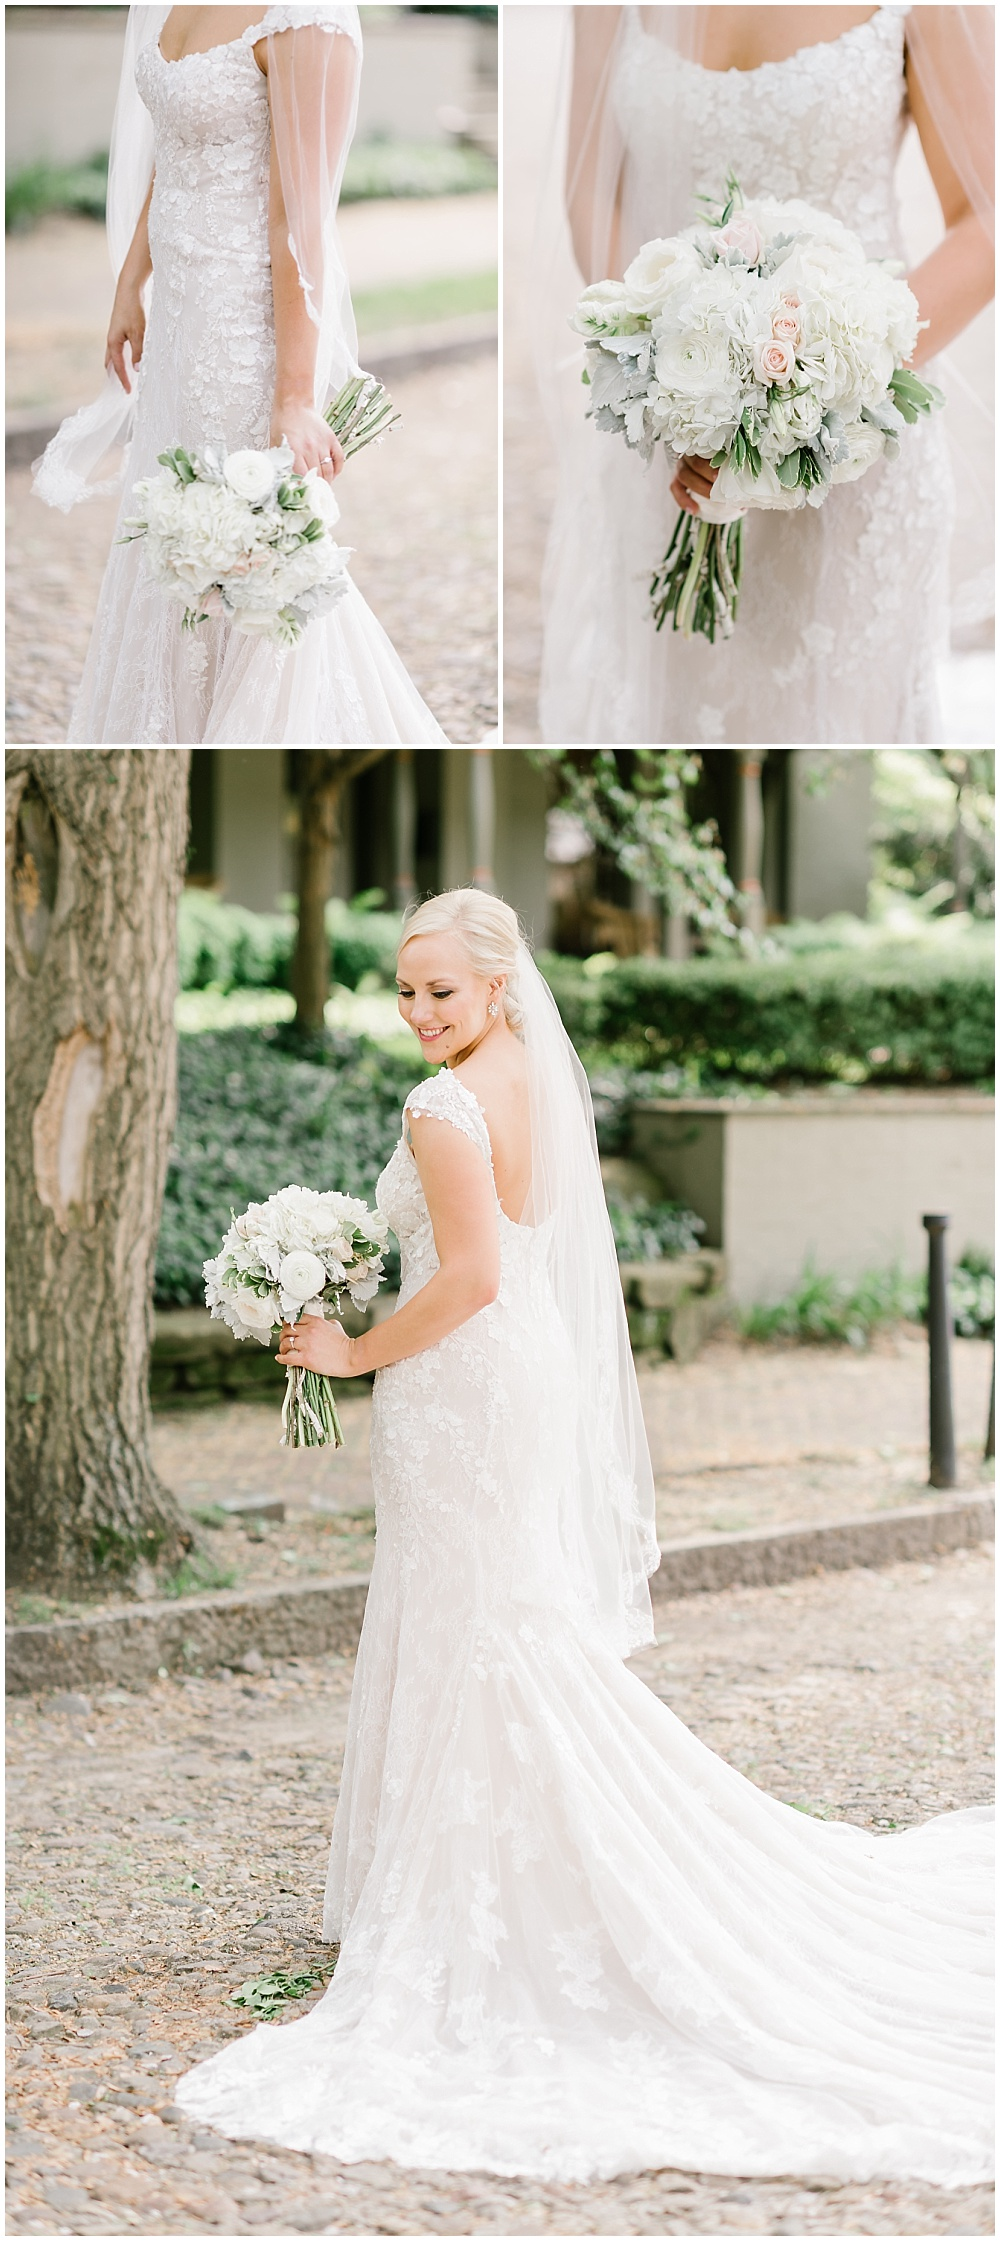 Outdoor bridal portraits, white lace wedding dress and a neutral bridal bouquet | A blue and gold downtown Indianapolis spring wedding at the Grand Hall at Historic Union Station with Rebecca Shehorn Photography and Jessica Dum Wedding Coordination is on the blog today!